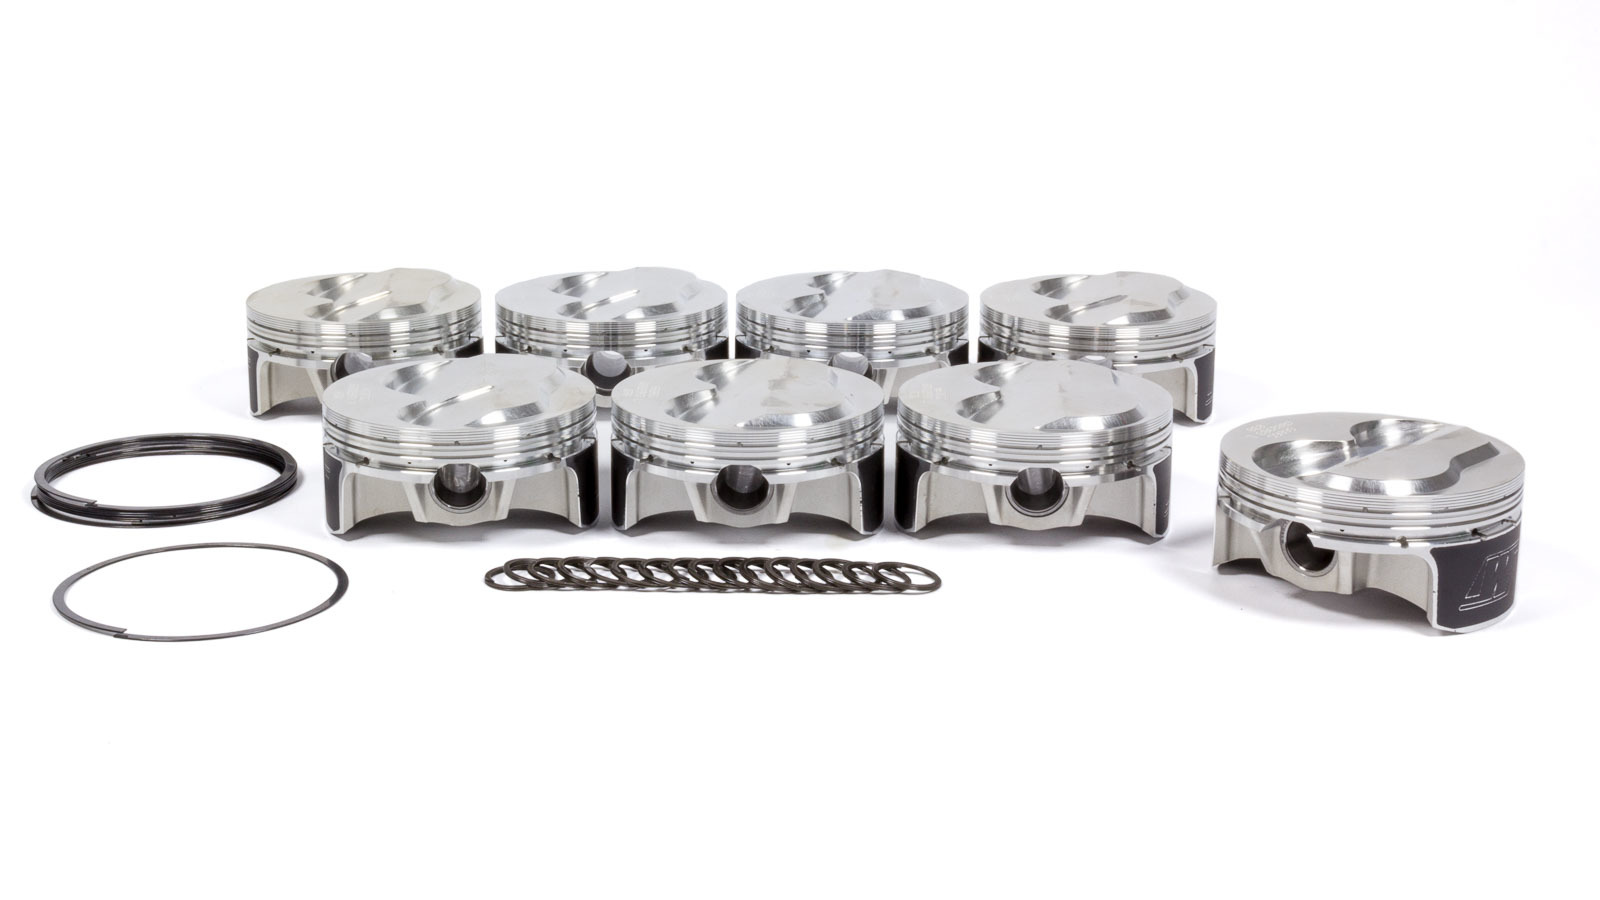 Wiseco K0029B3 Piston, 18 Degree 400 Solid Dome, Forged, 4.155 in Bore, 0.043 in x 0.043 in x 3.0 mm Ring Grooves, Plus 3.00 cc, Small Block Chevy, Set of 8